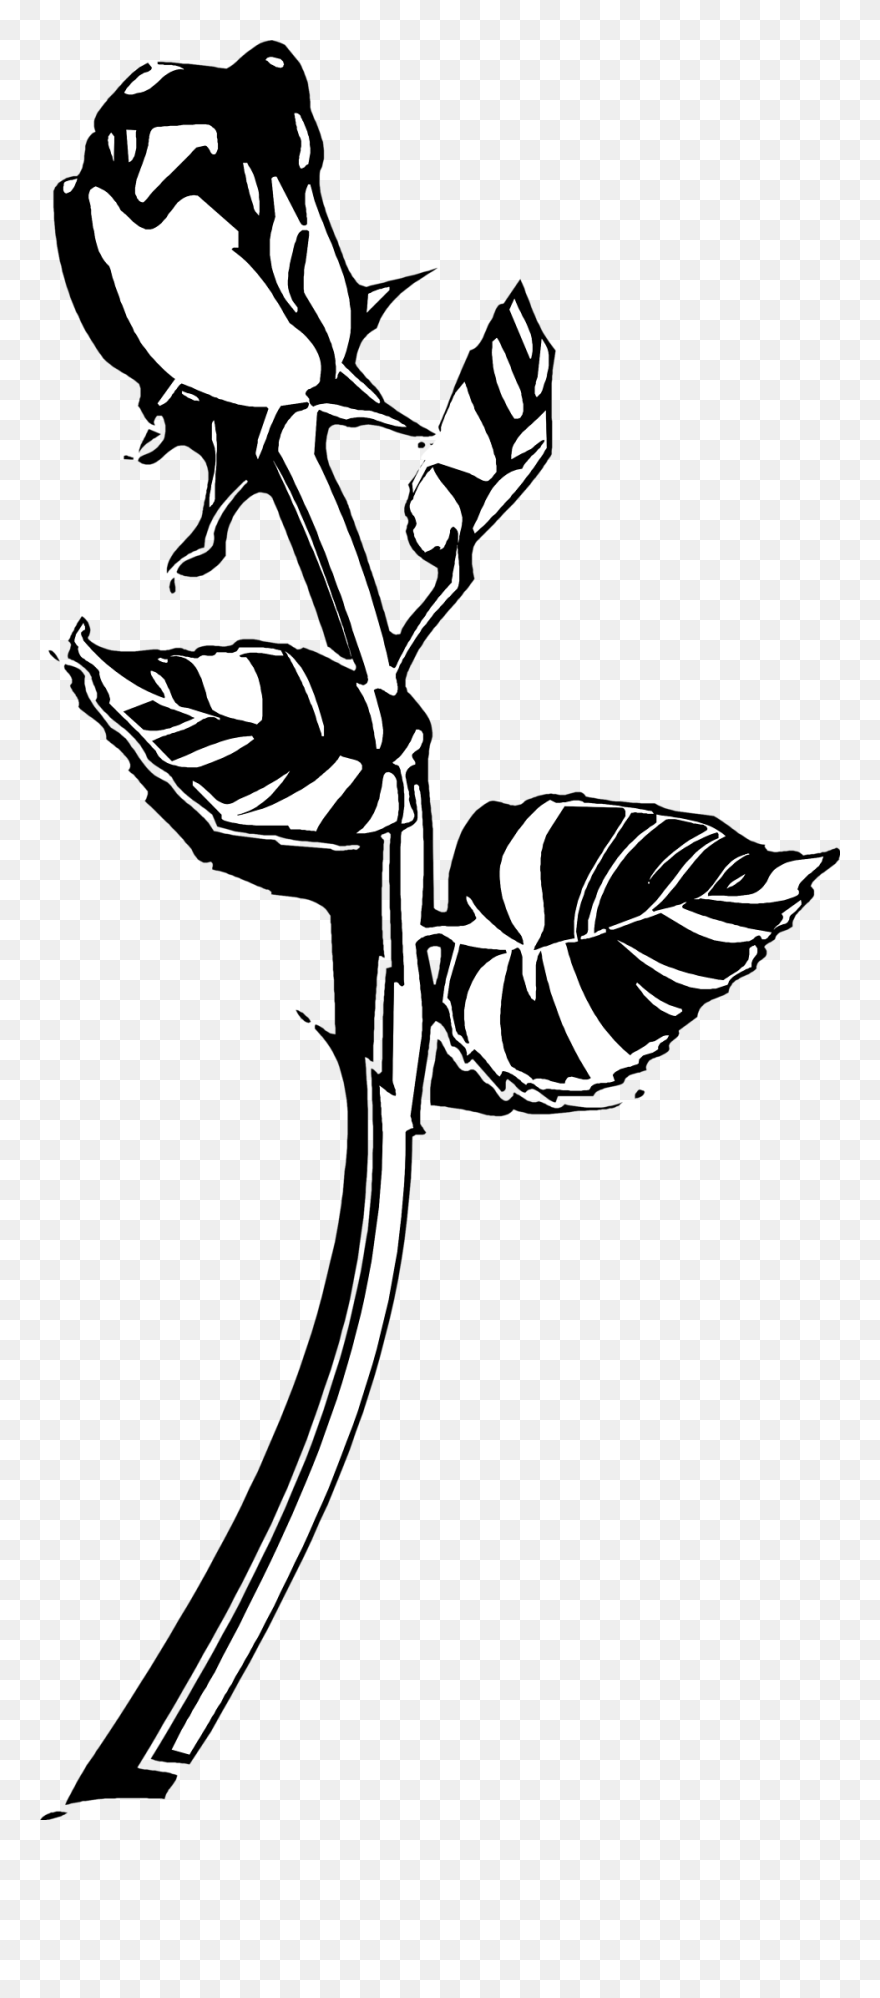 Flower black and white single. Rose png cliparts transparent